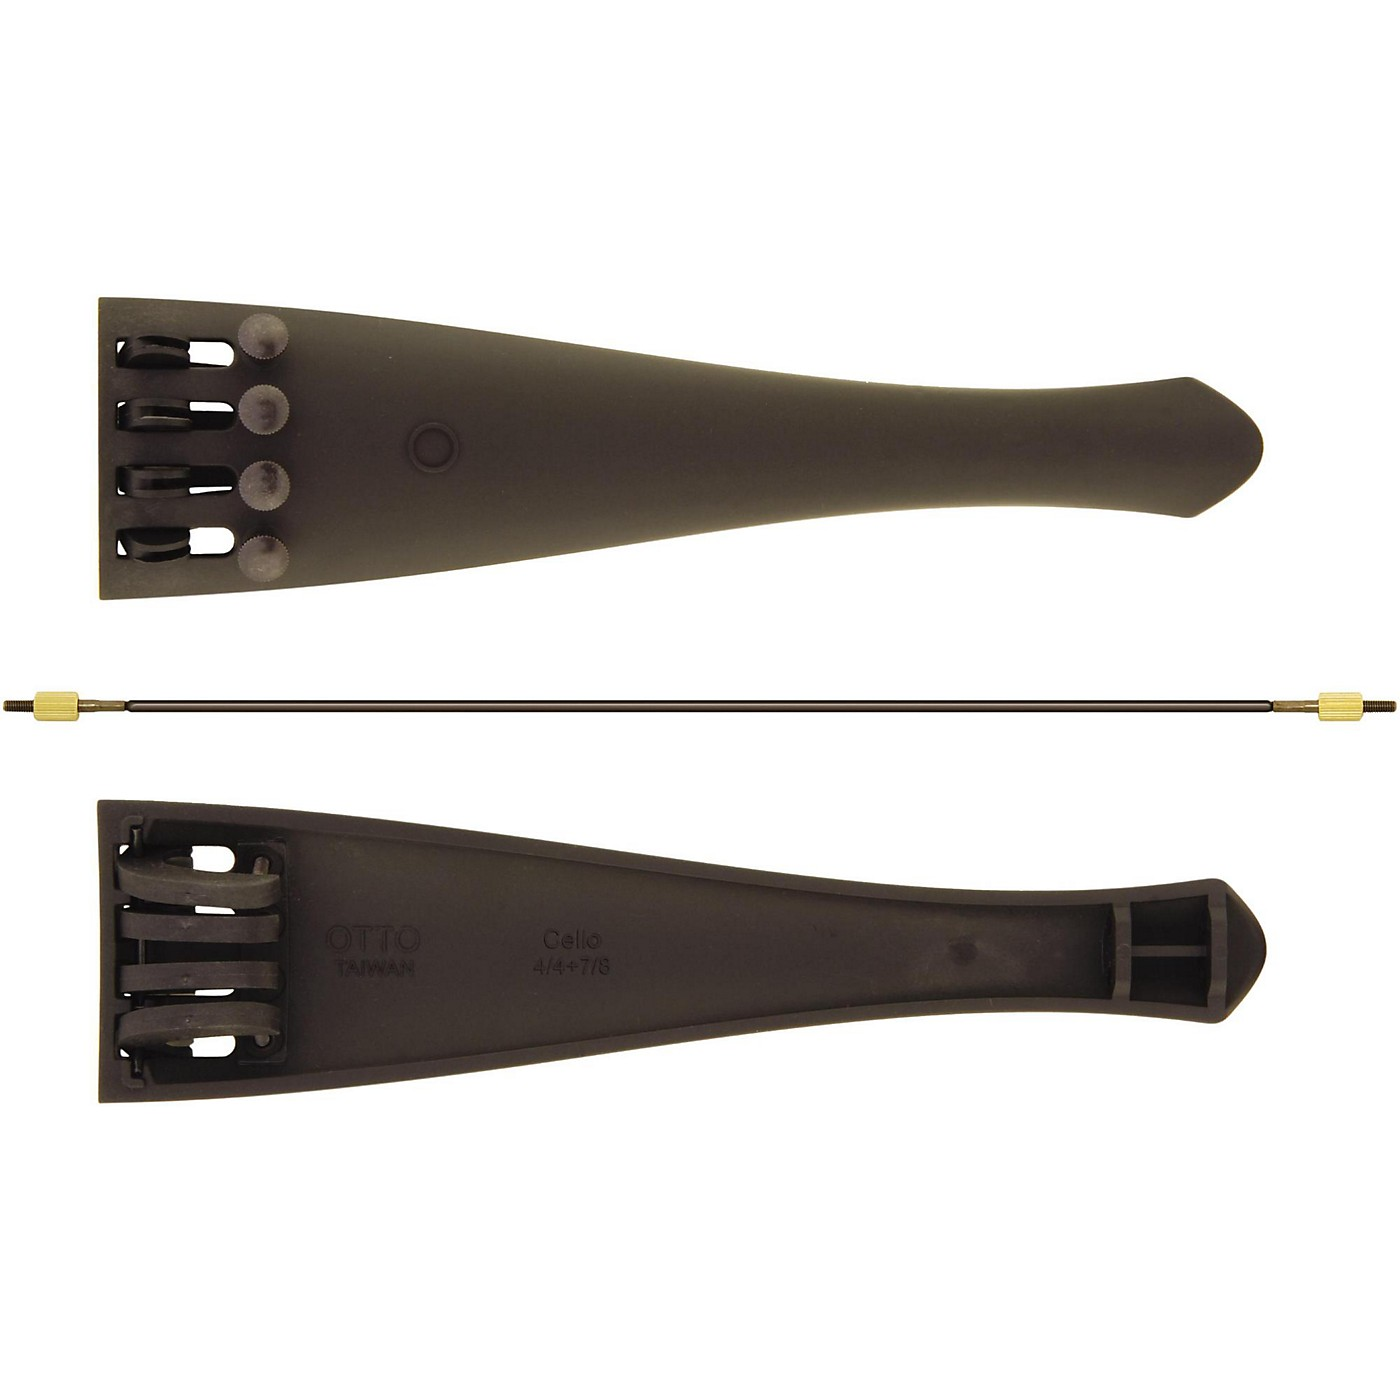 Otto Musica Carbon Composite Cello Tailpiece with Four Built-In Fine Tuners and Braided Steel Tailgut thumbnail